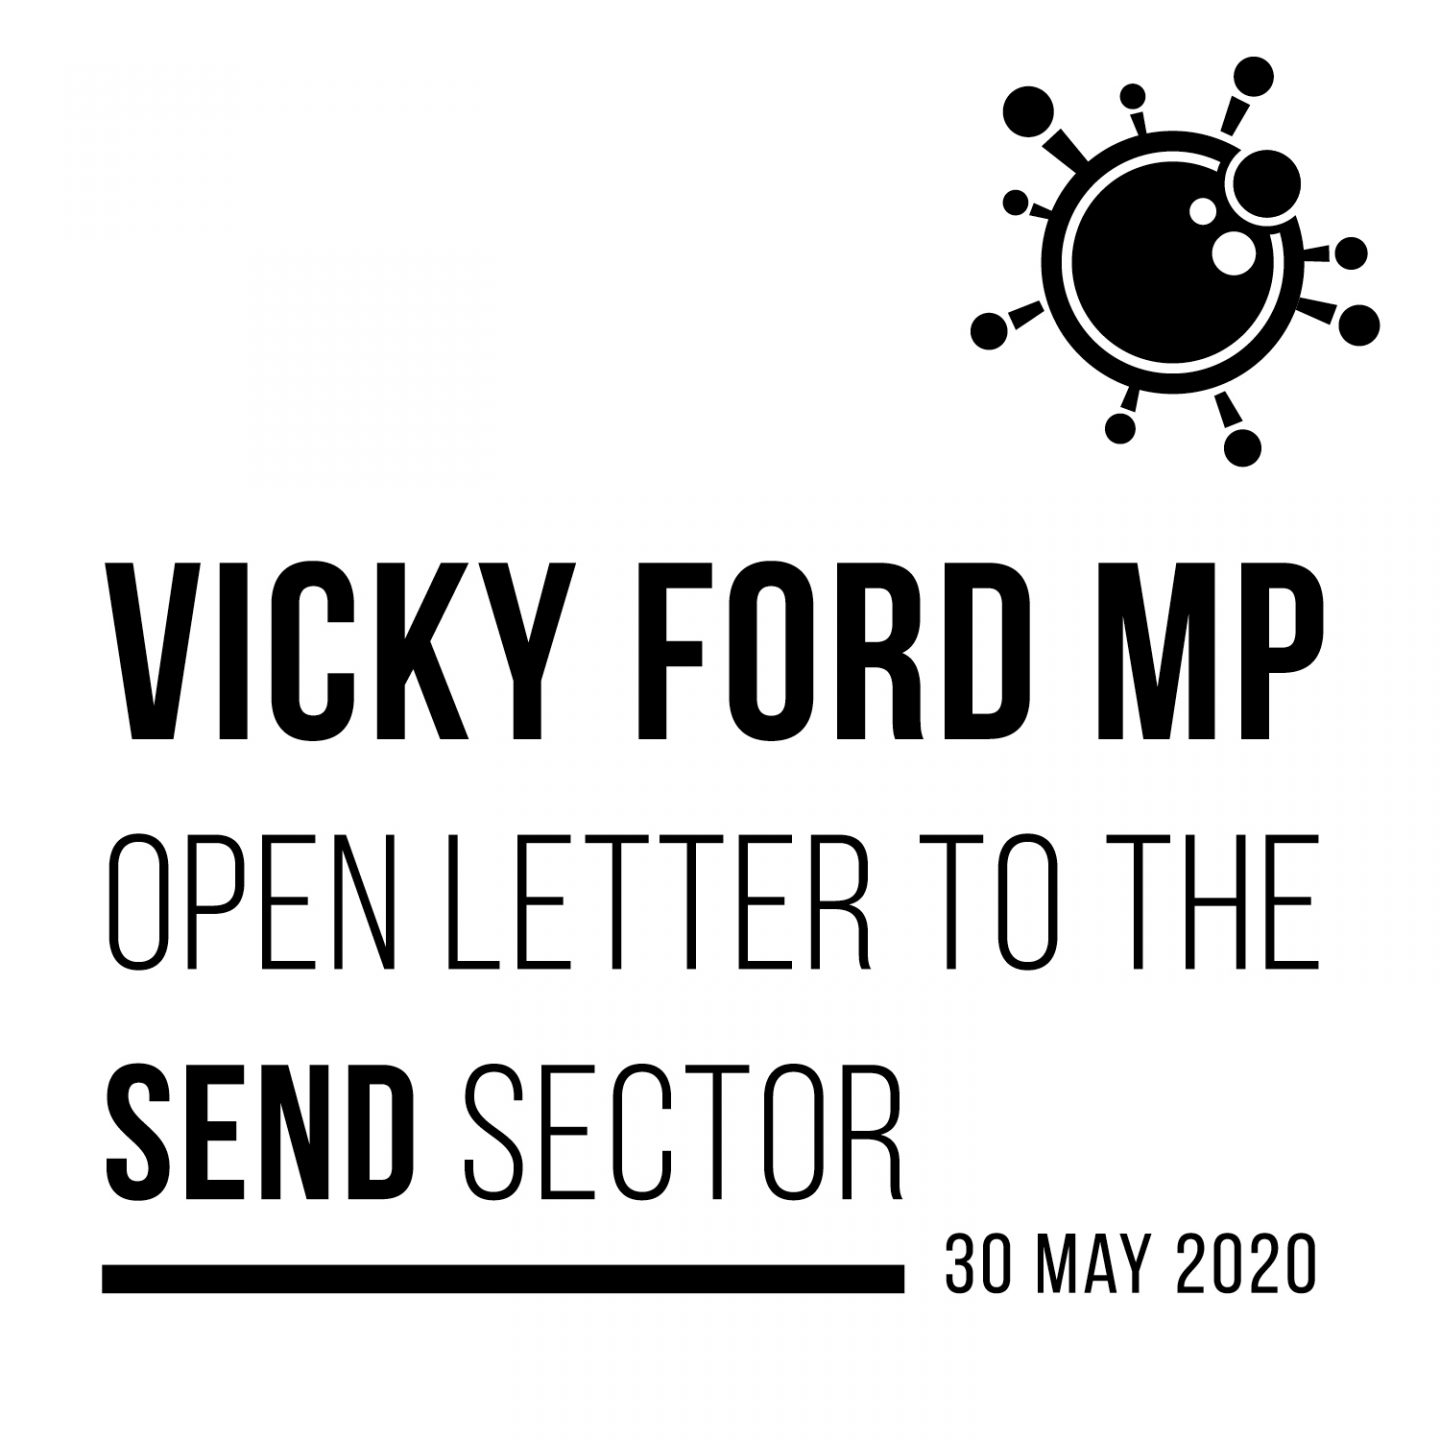 Vicky Ford MP Open Letter to the SEND Sector 2